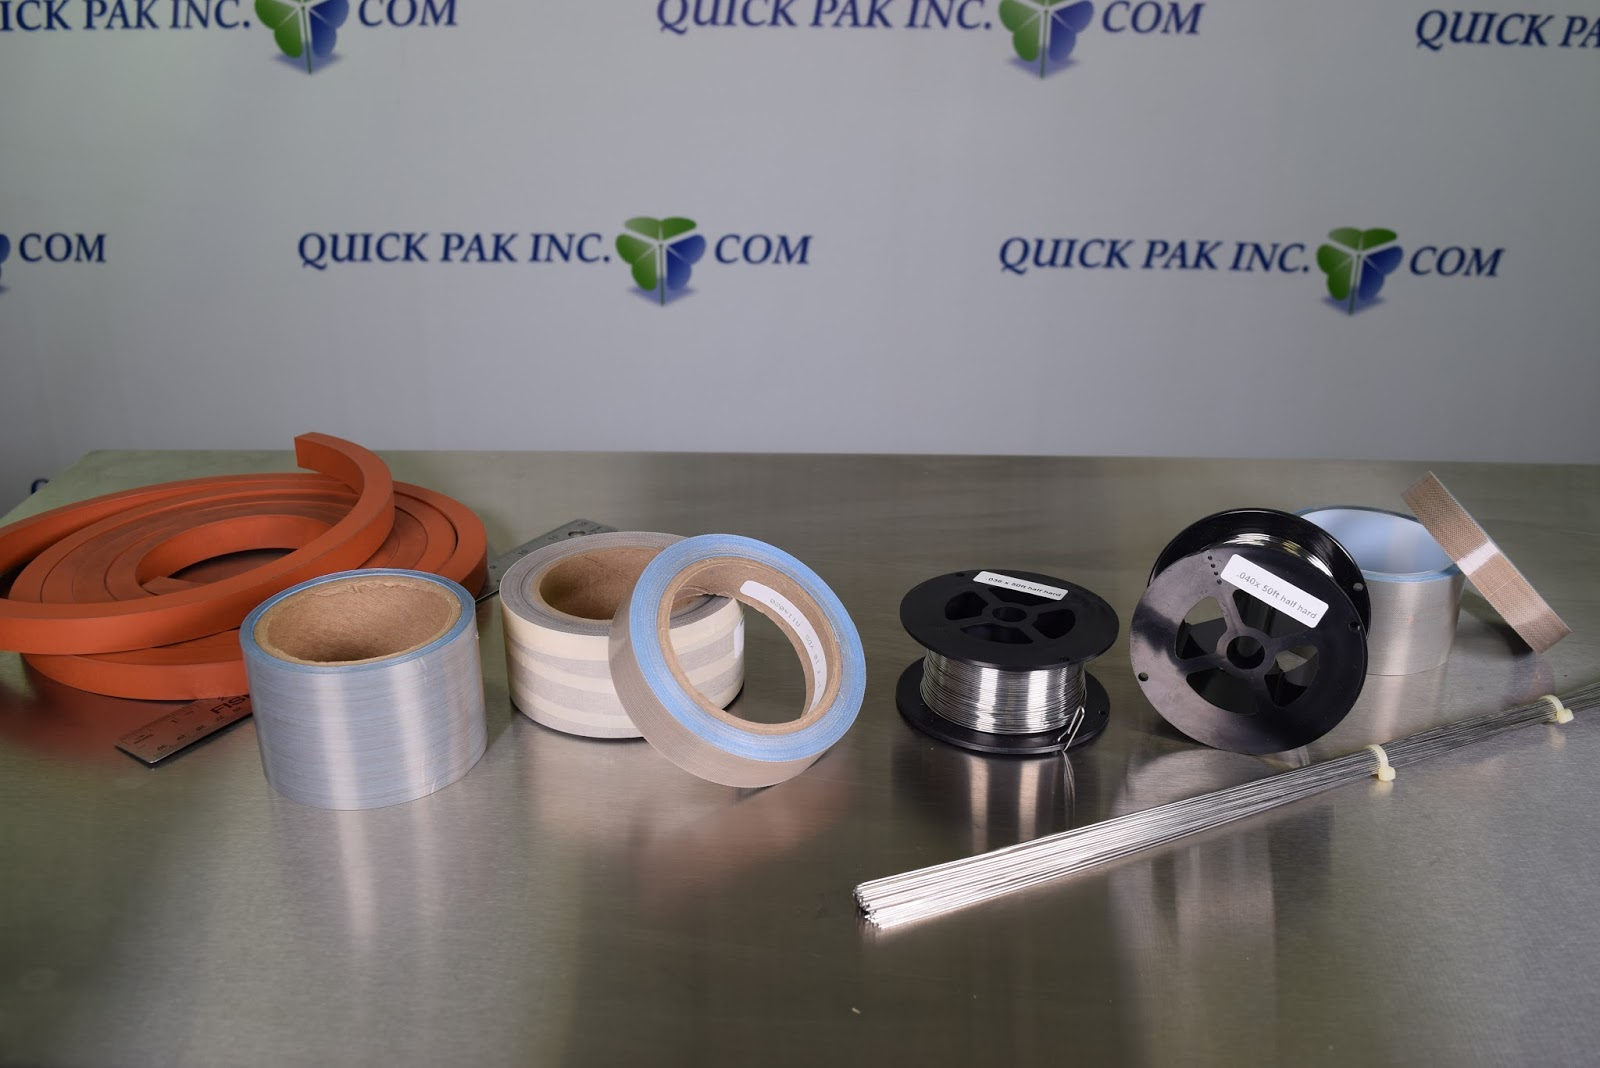 Nichrome Sealing Wire & Teflon PTFE Tape For Your Shrink Wrappers